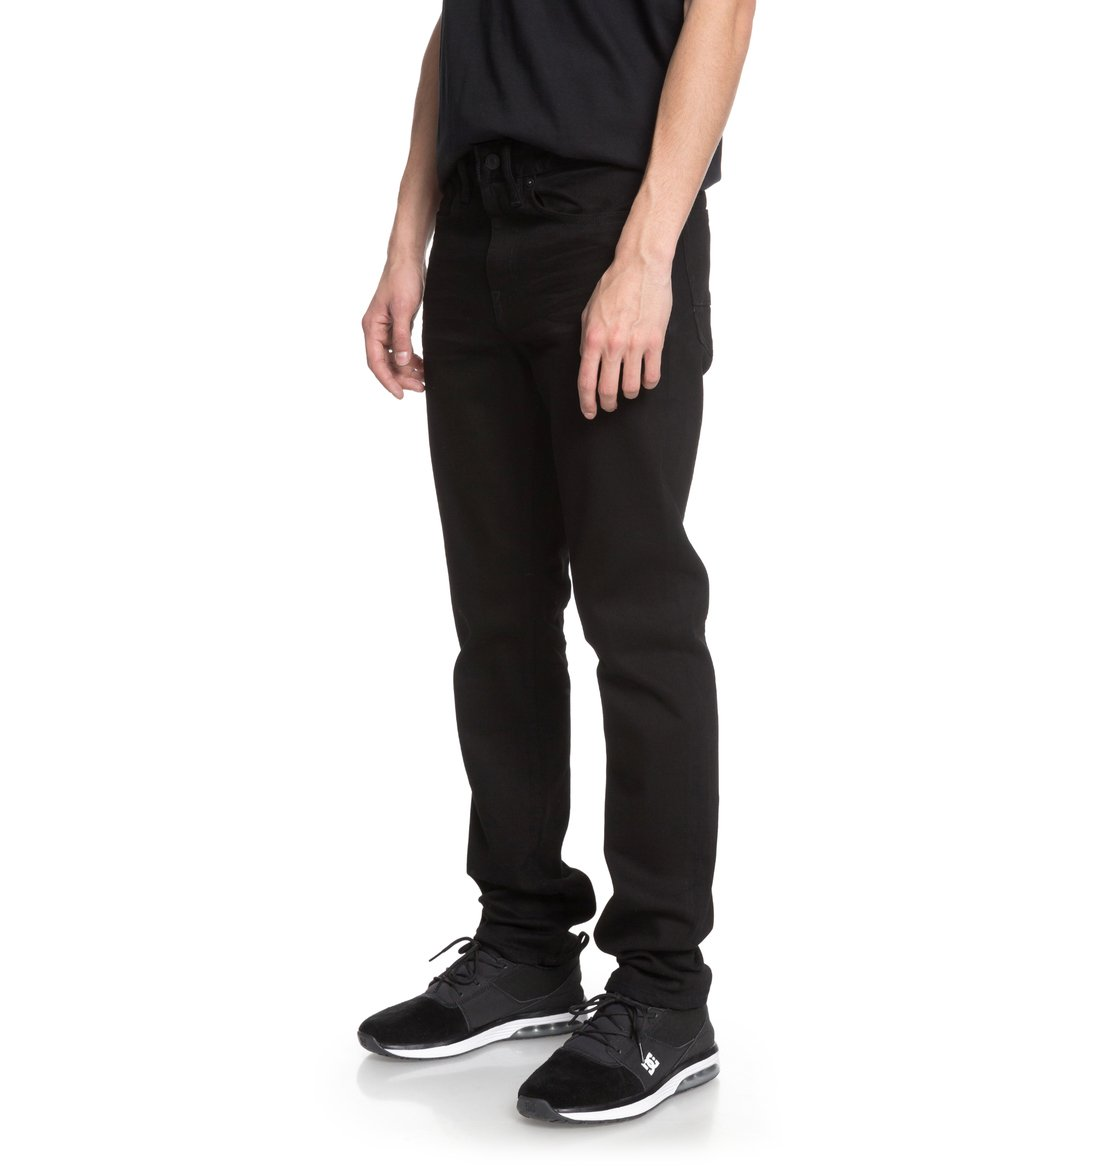 dc shoes Worker Black Rinse Slim - Jeans vestibilità slim da Uomo - Black - DC Shoes